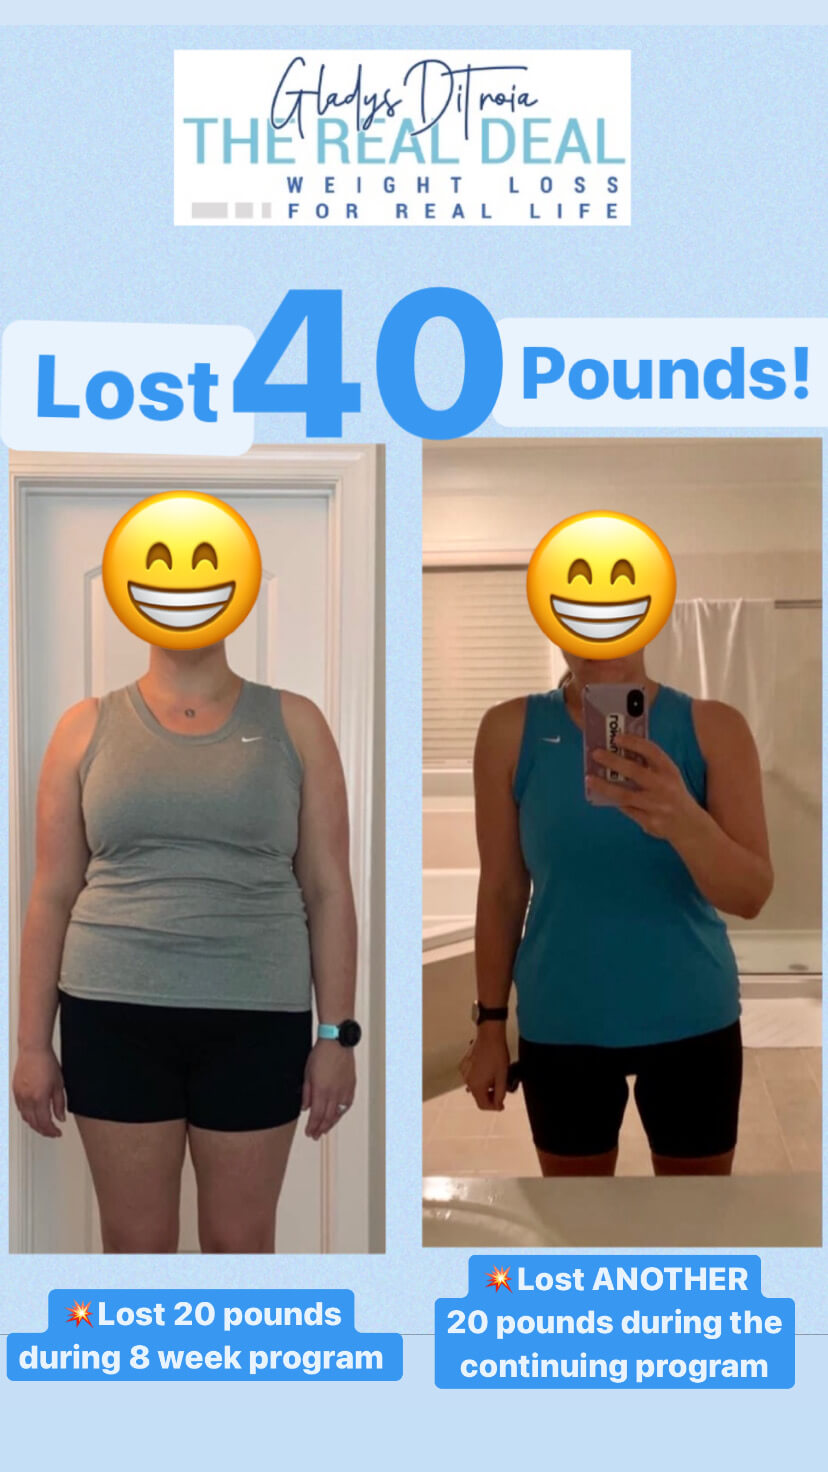 The Real Deal Weight Loss - lost 40lbs